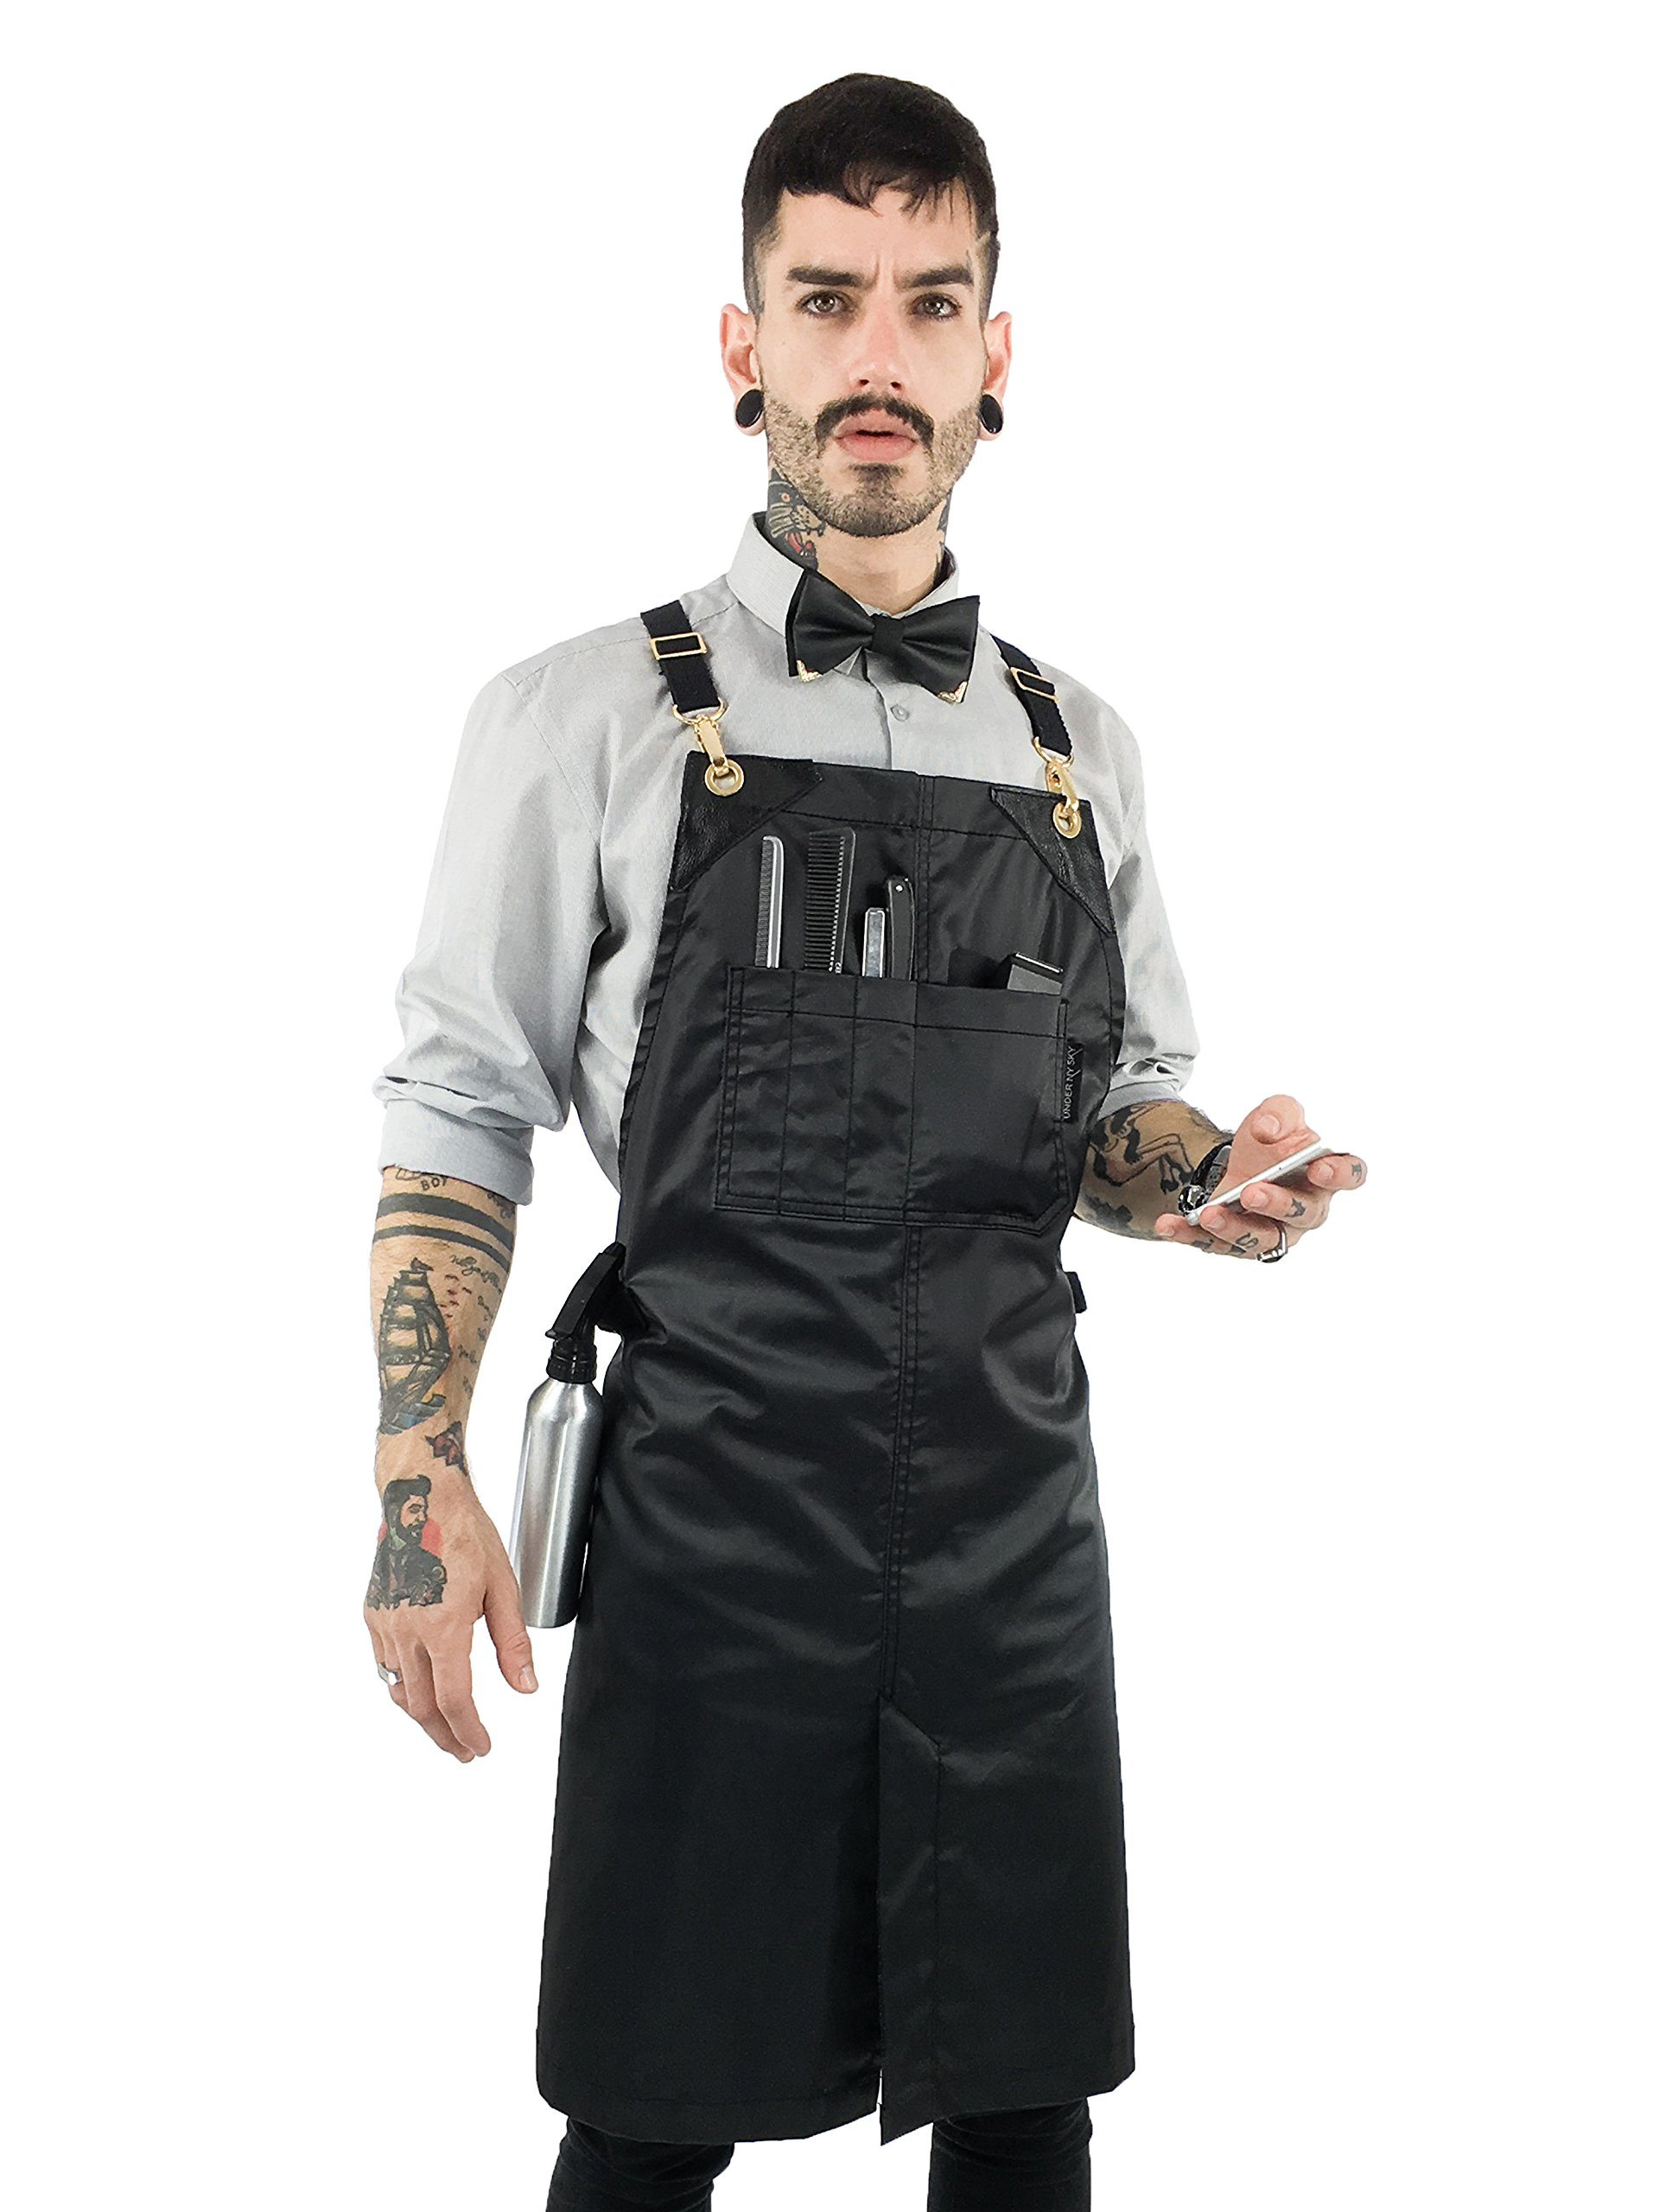 Under NY Sky Cross-Back Barber Jet Black Apron – Golden Hardware with Durable Coated Twill, Leather Reinforcement and Split-Leg – Adjustable, Men and Women, Pro Hair Stylist, Tattoo, Salon Aprons